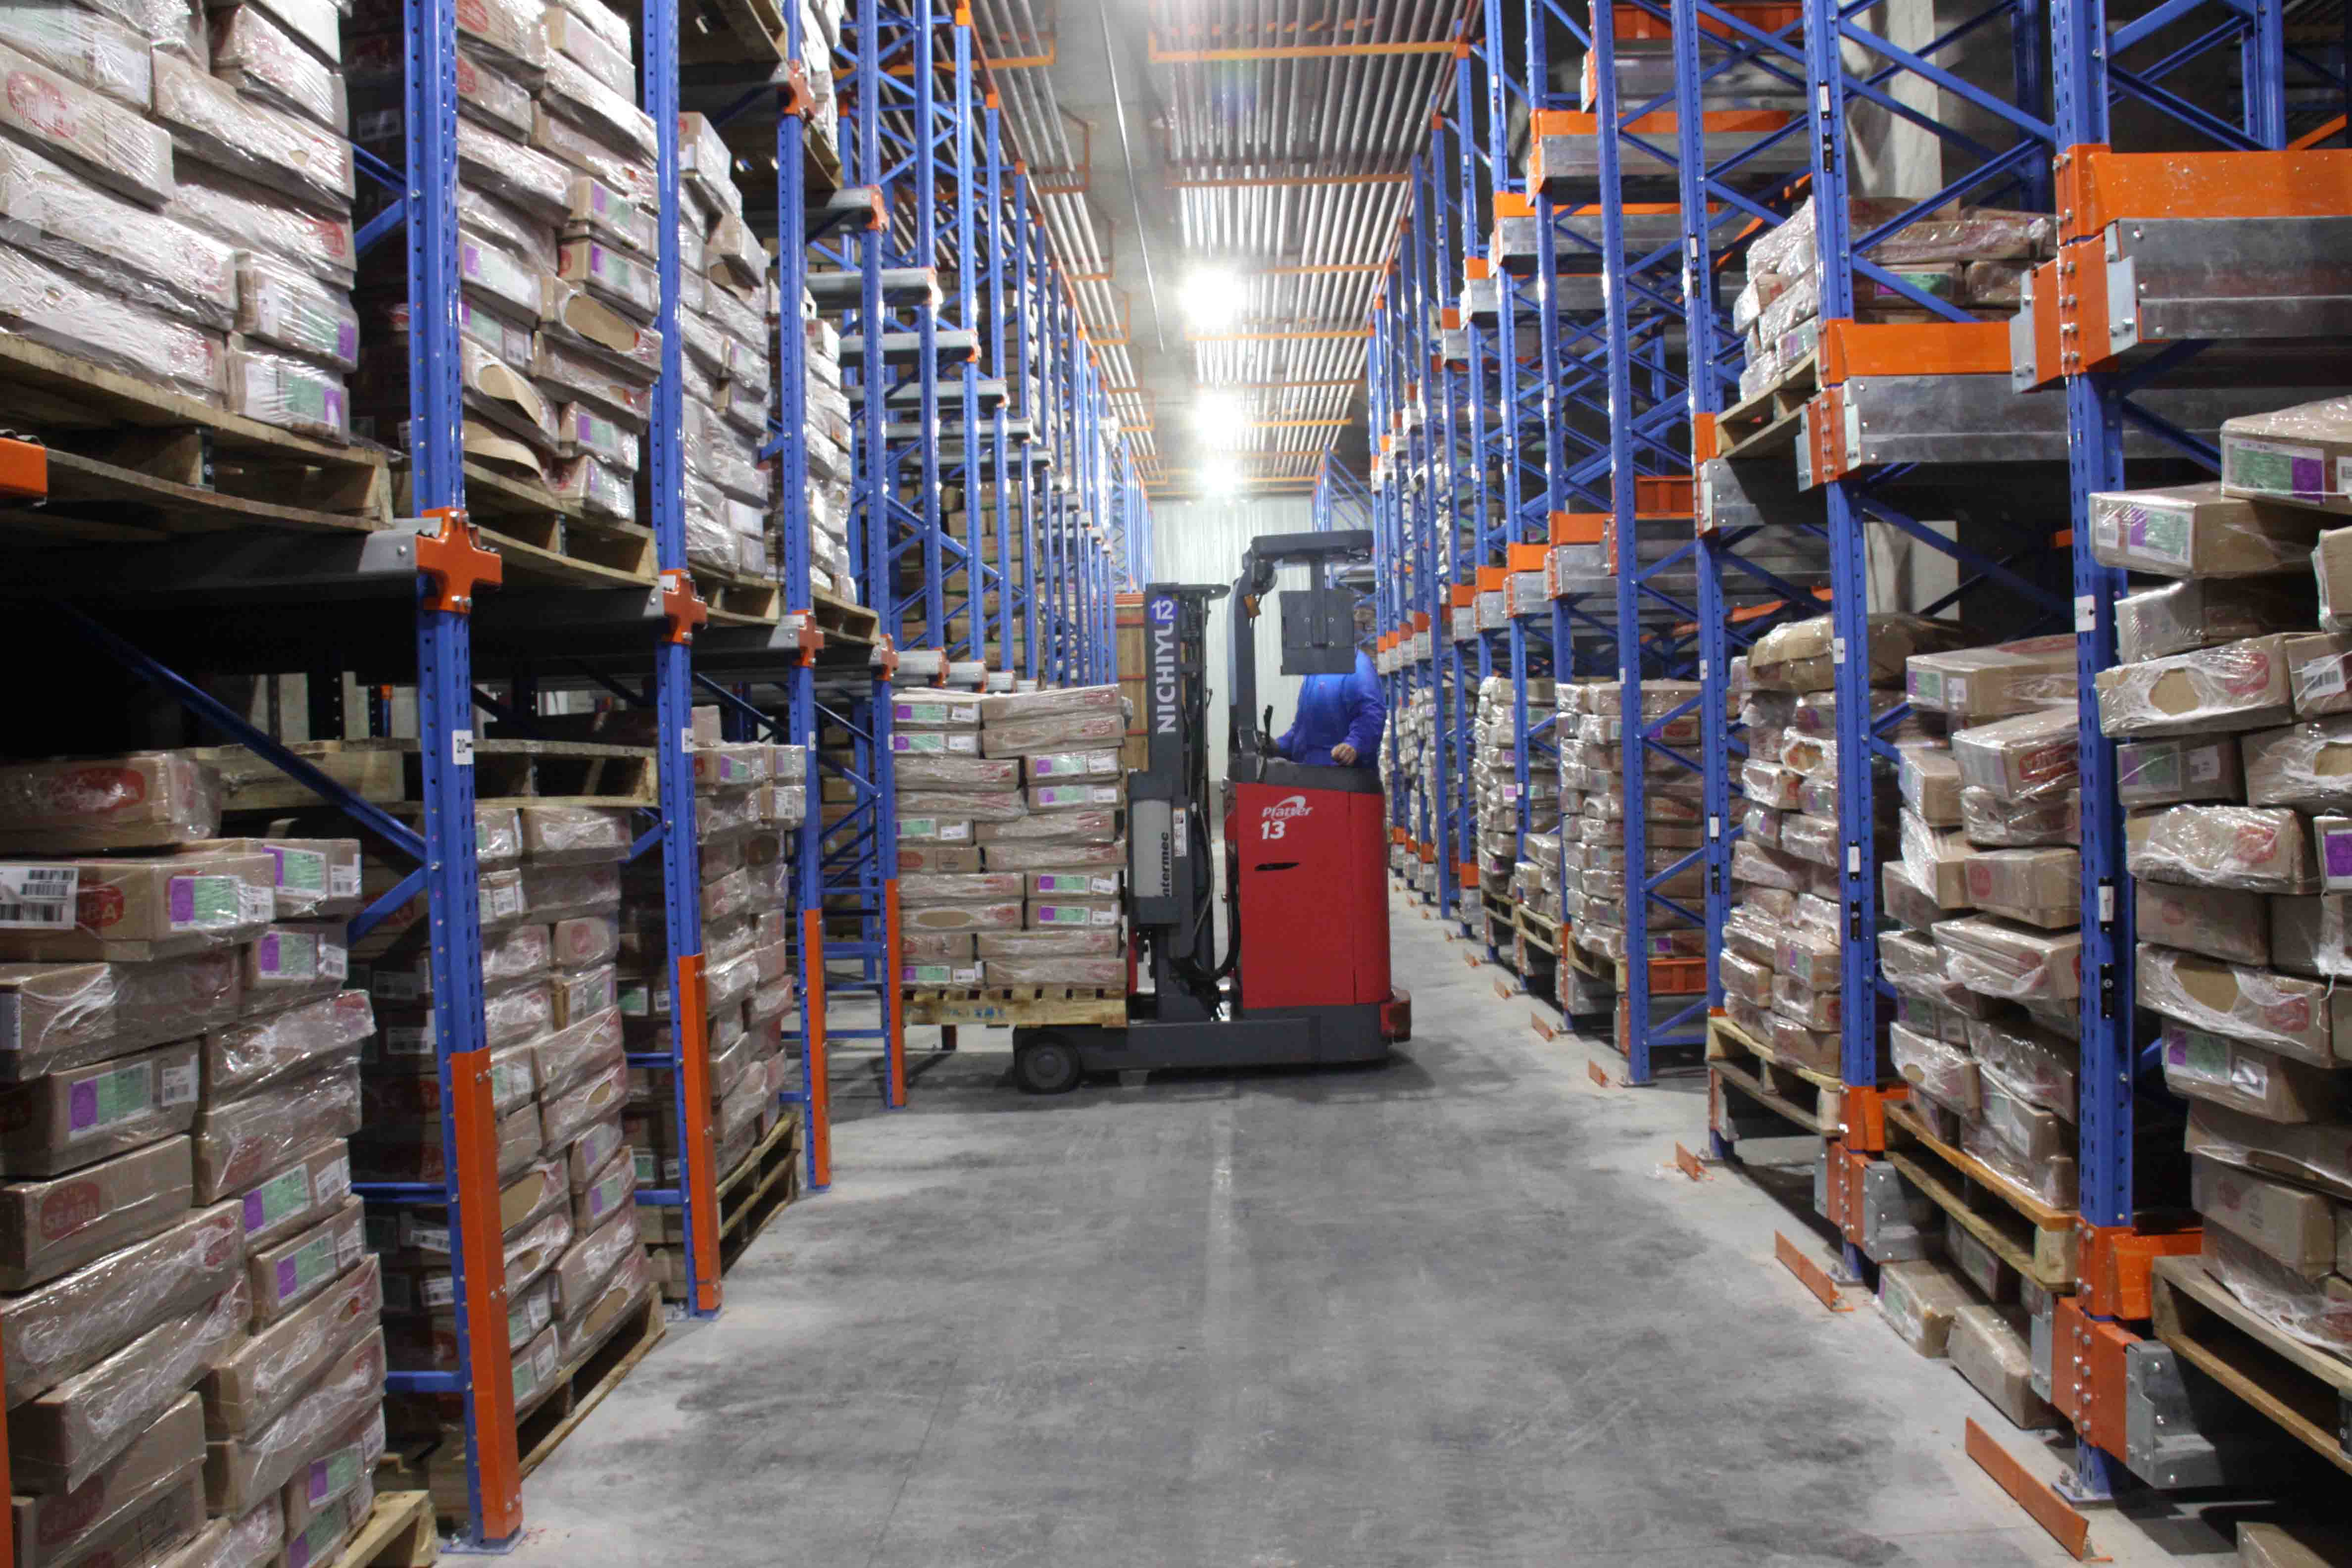 Cold Chain Storage Racking & Investing cold chain storage become a hot spot